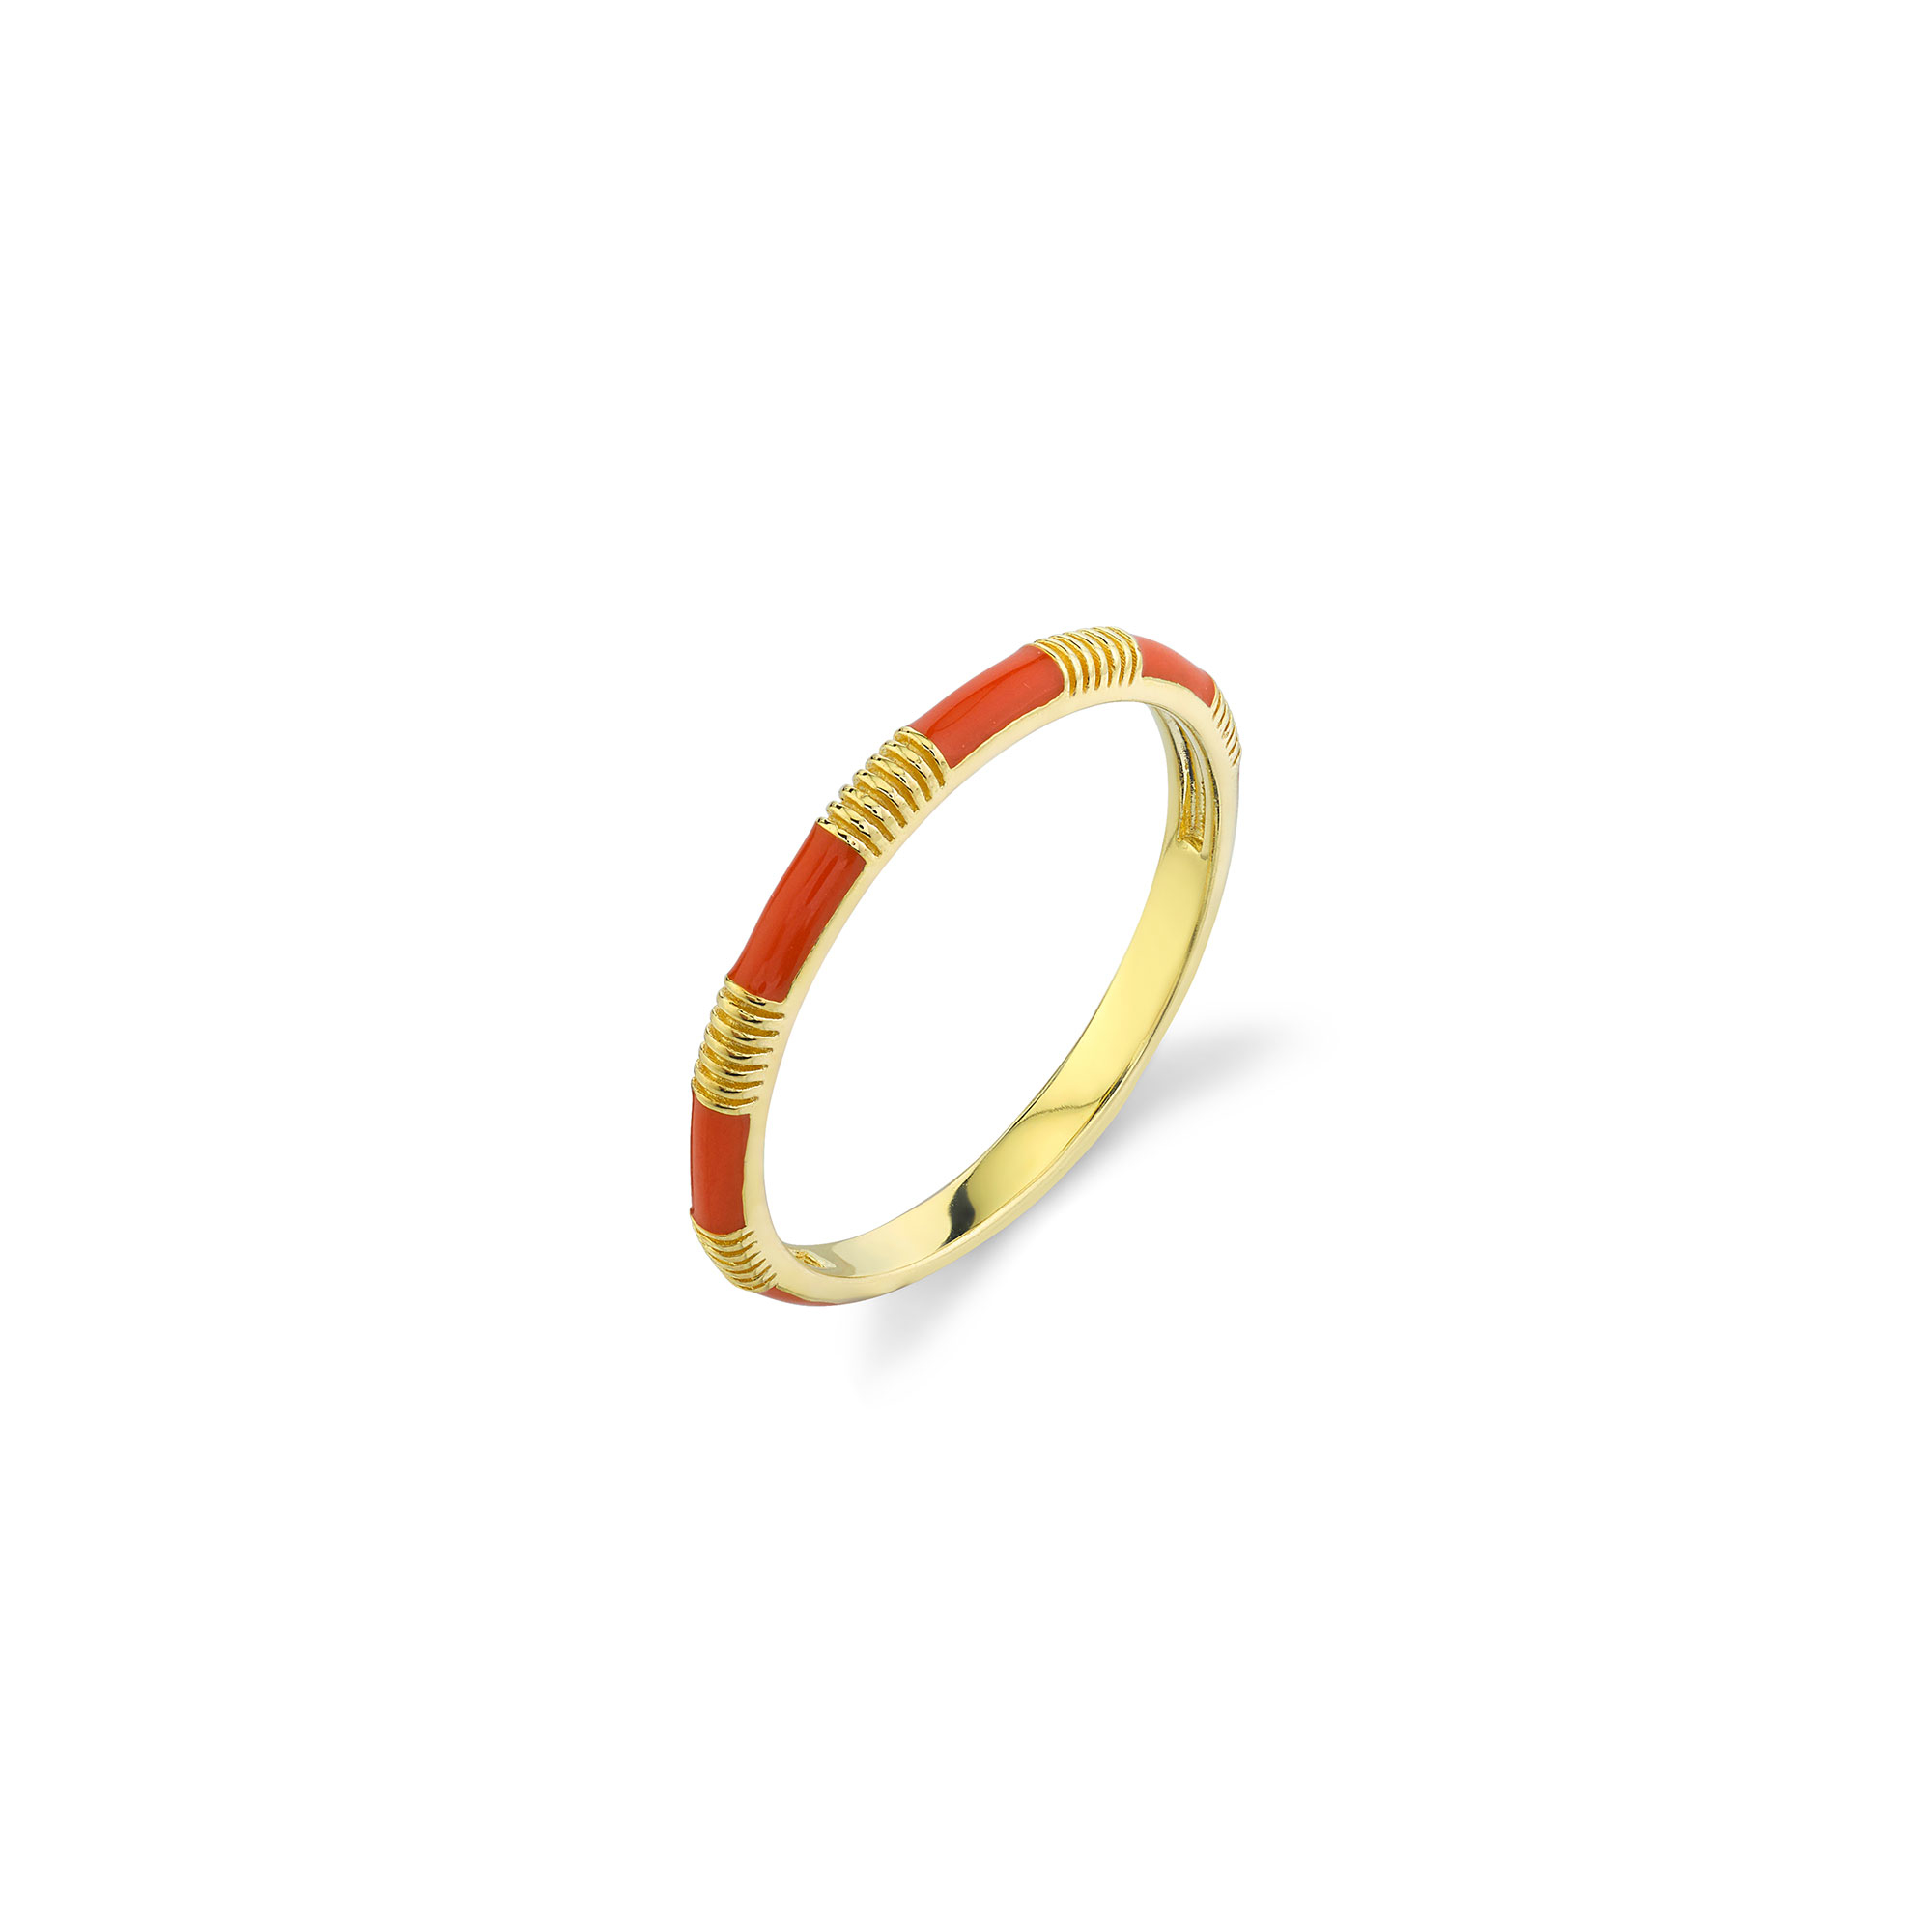 Sloane Street 18K Yellow Gold    Gold Ring without stones R013G-OE-Y-7